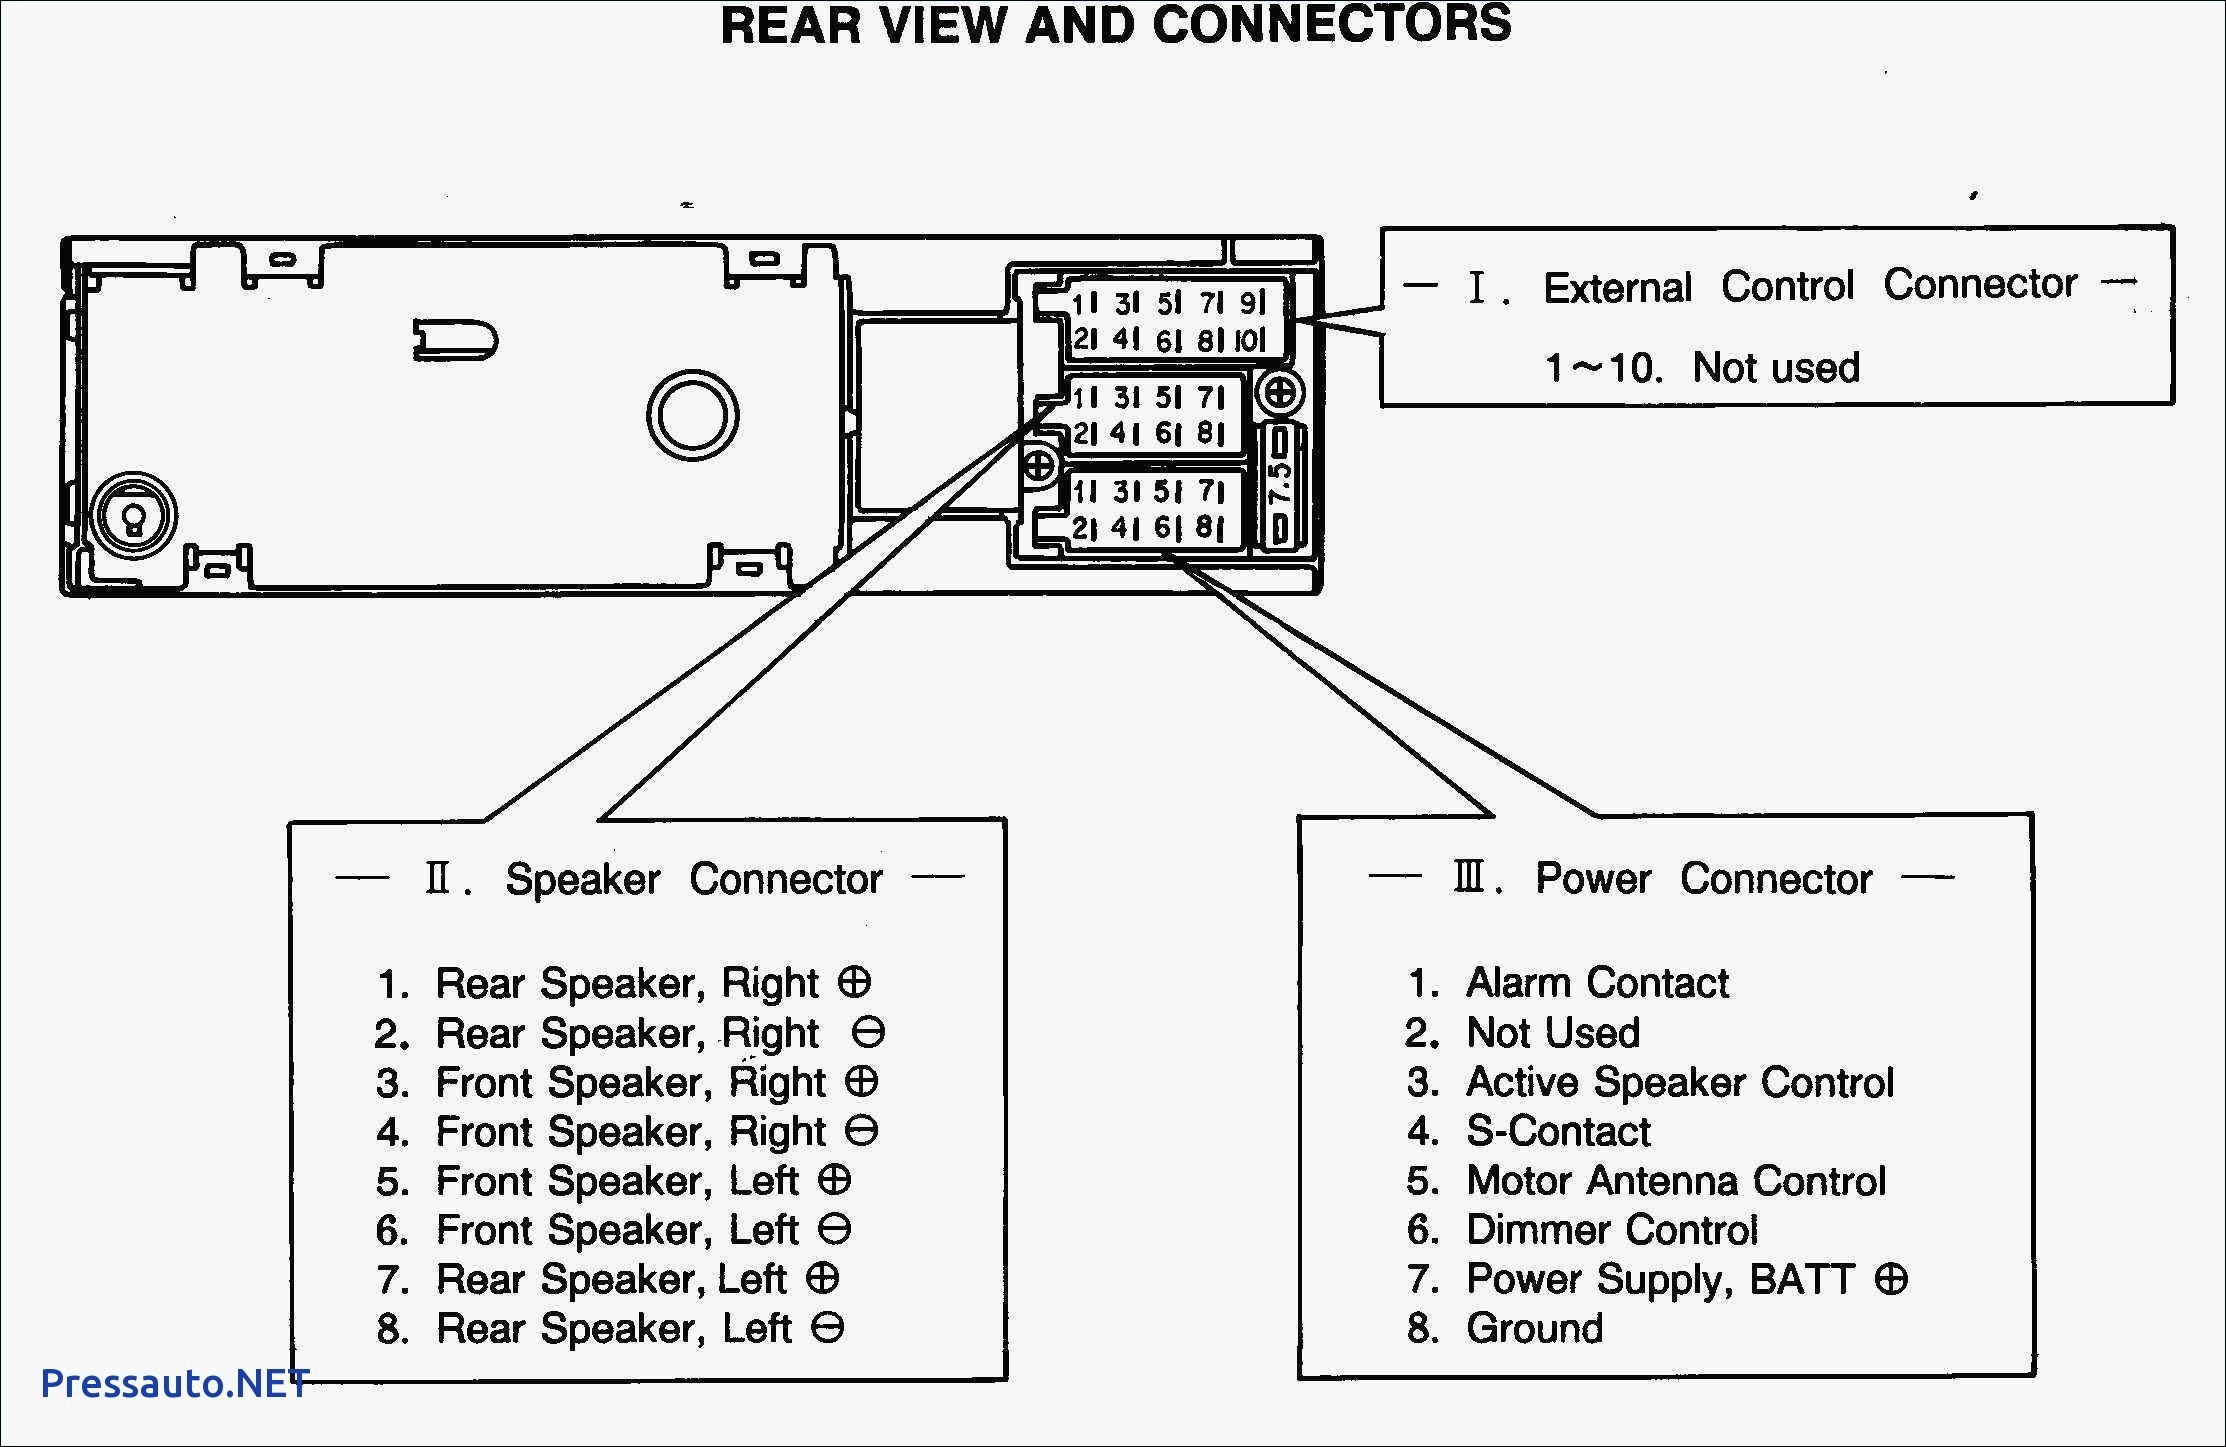 2001 Vw Jetta Engine Diagram Vw Stereo Wiring Harness Another Blog About Wiring Diagram • Of 2001 Vw Jetta Engine Diagram